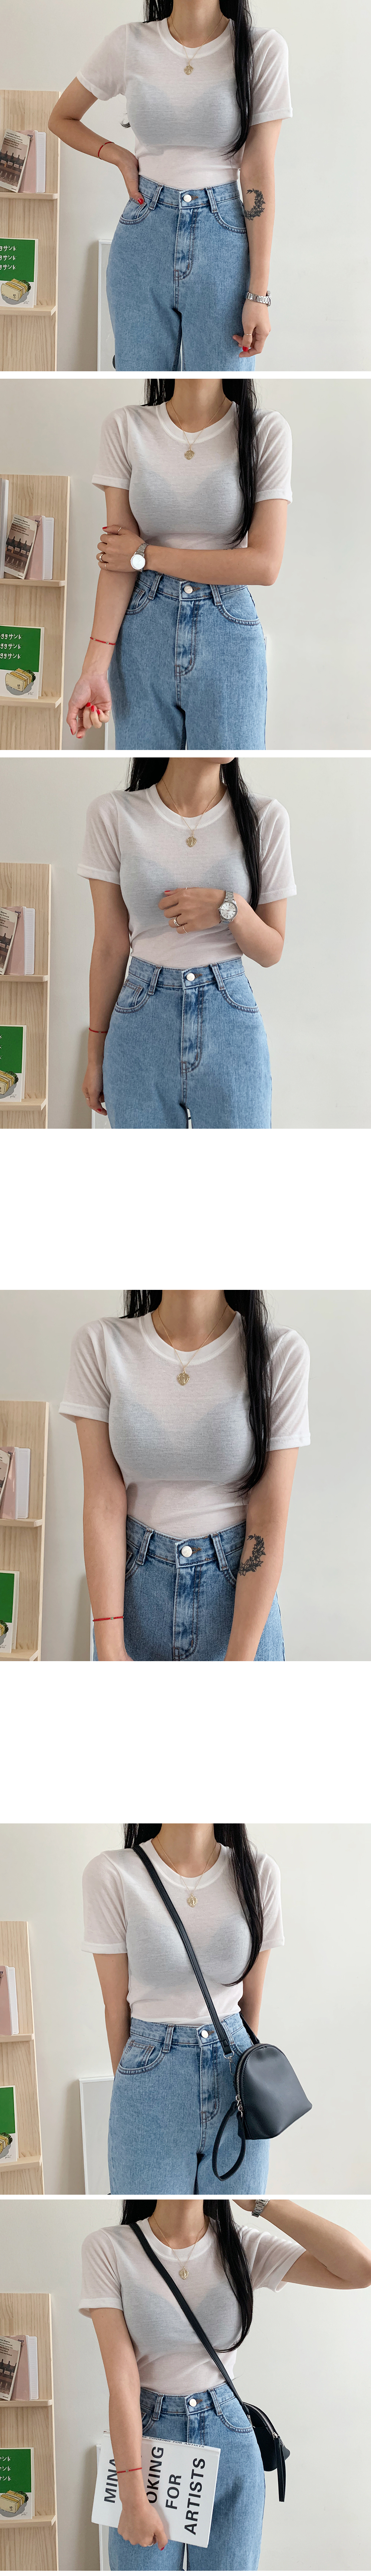 Coco Color Round Short Sleeve Tee